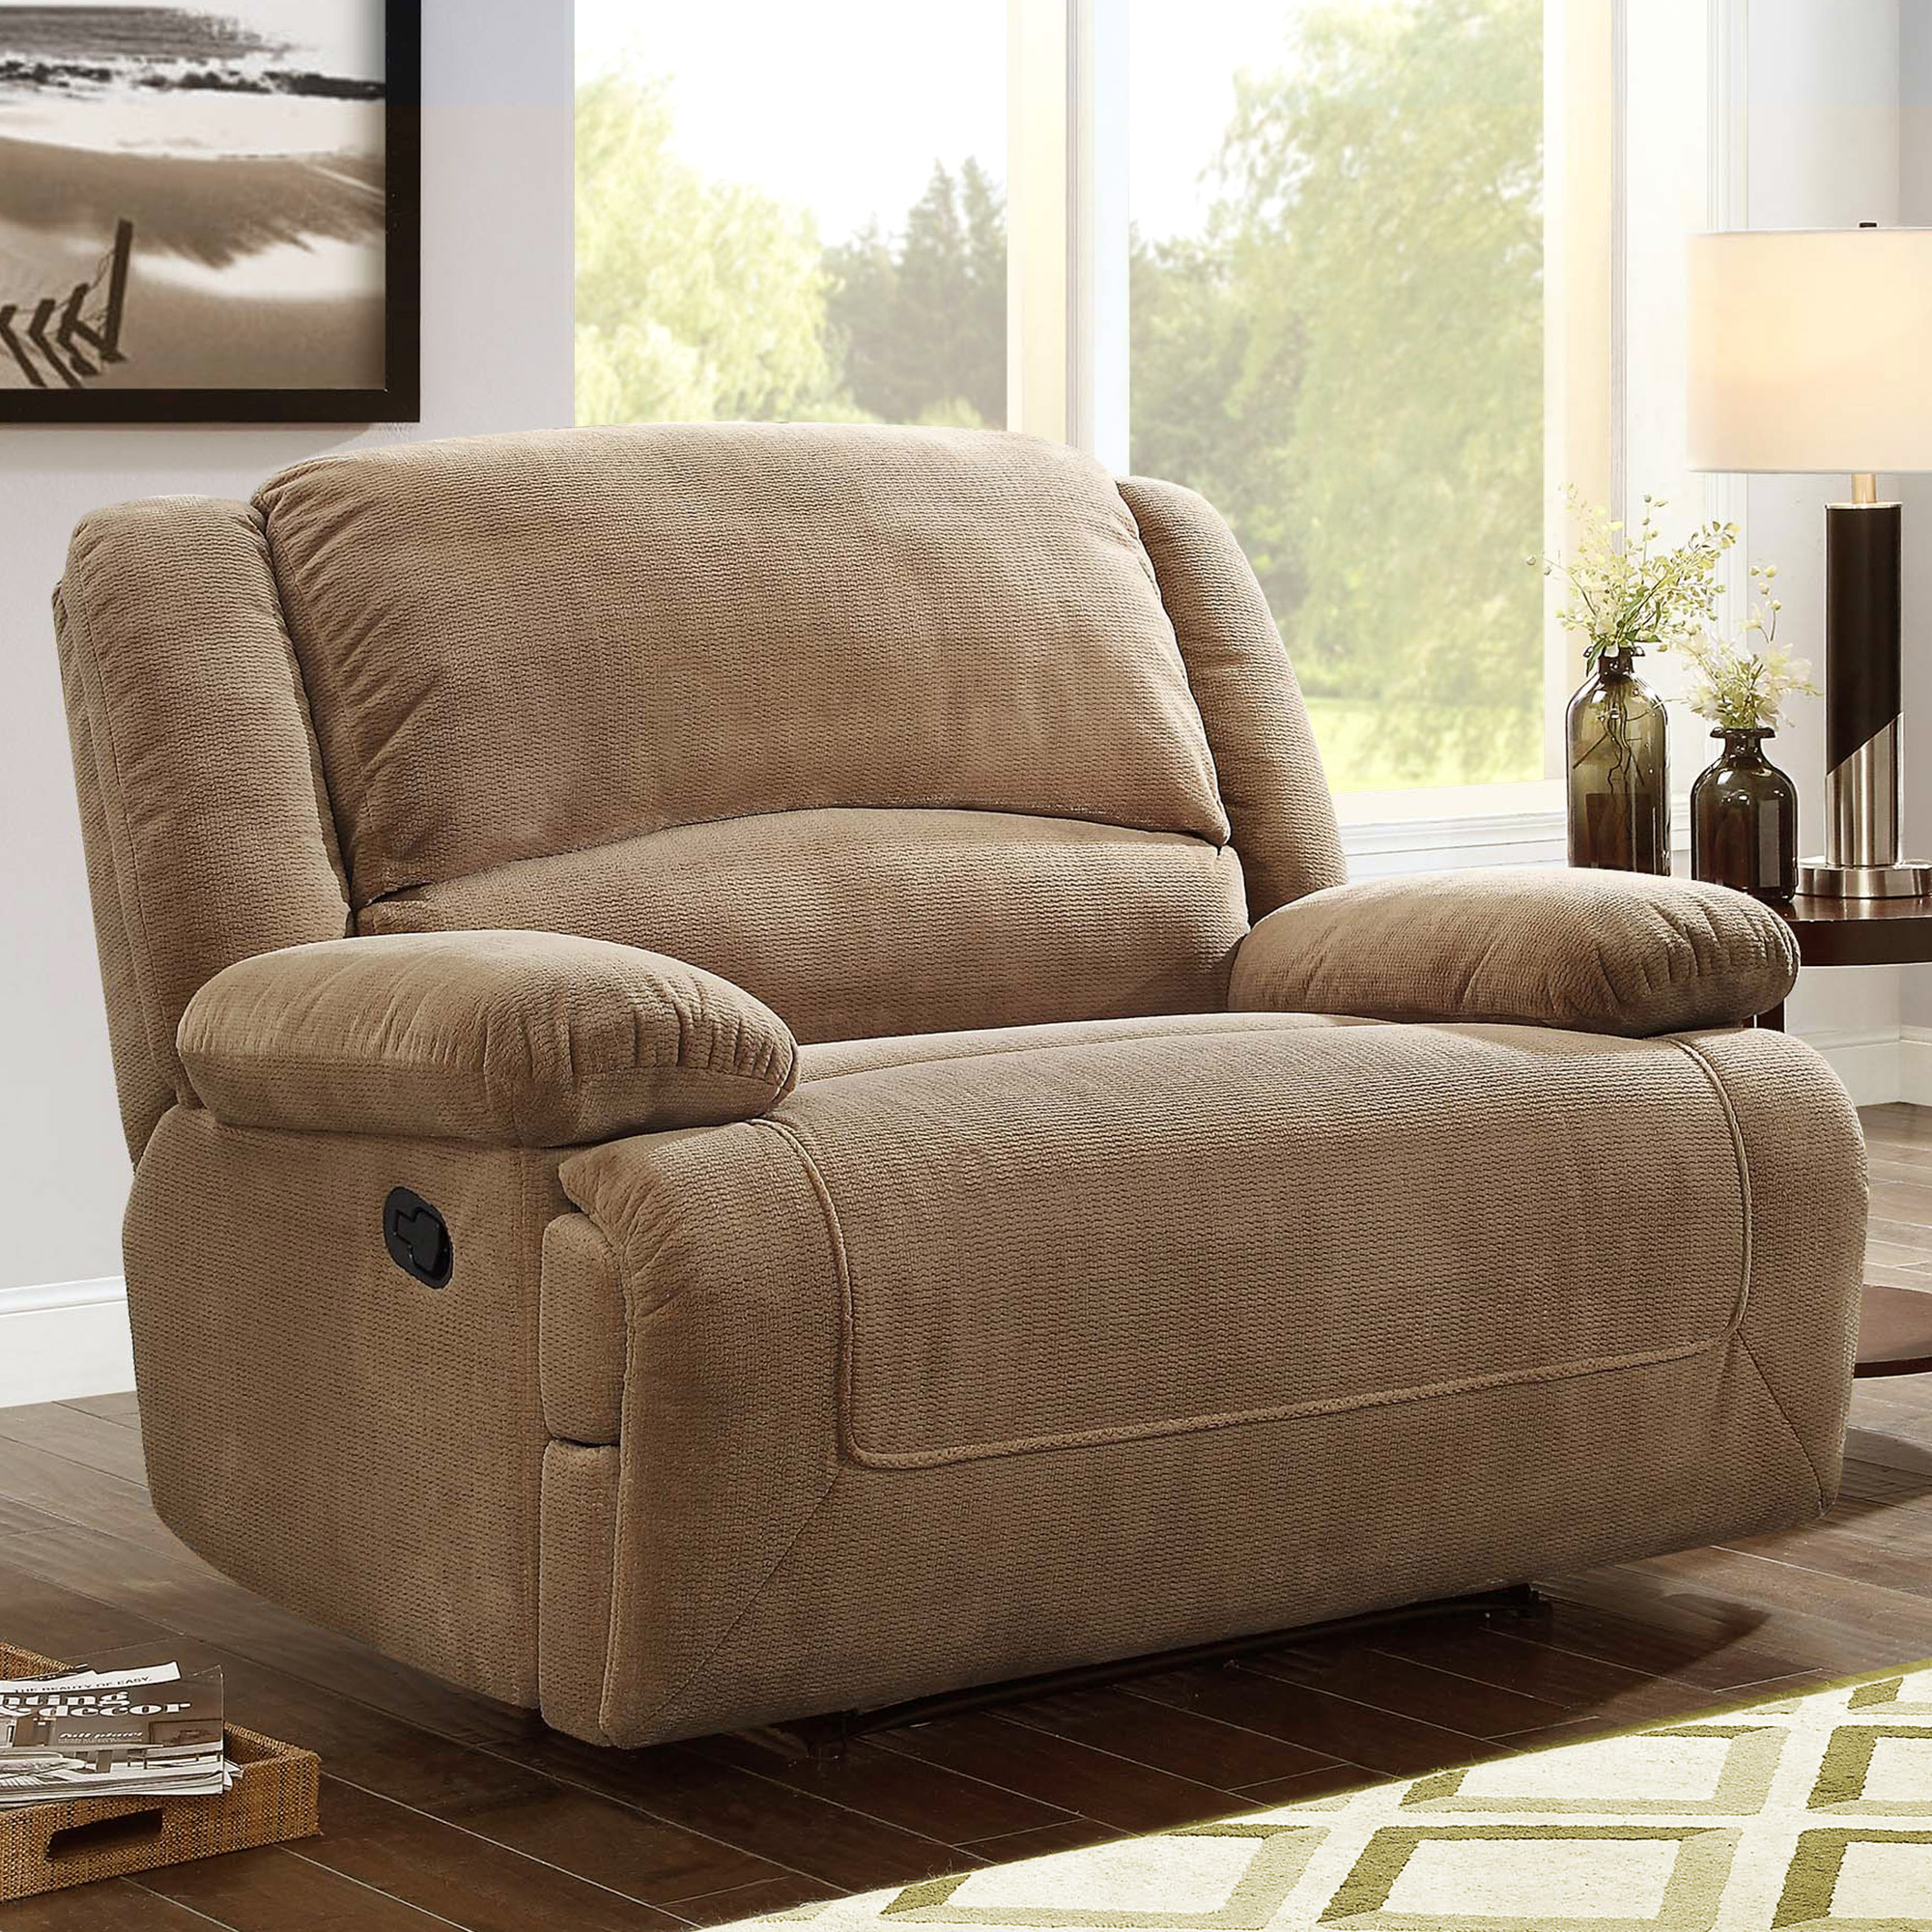 Better Homes and Gardens Cuddler Recliner, Multiple Colors